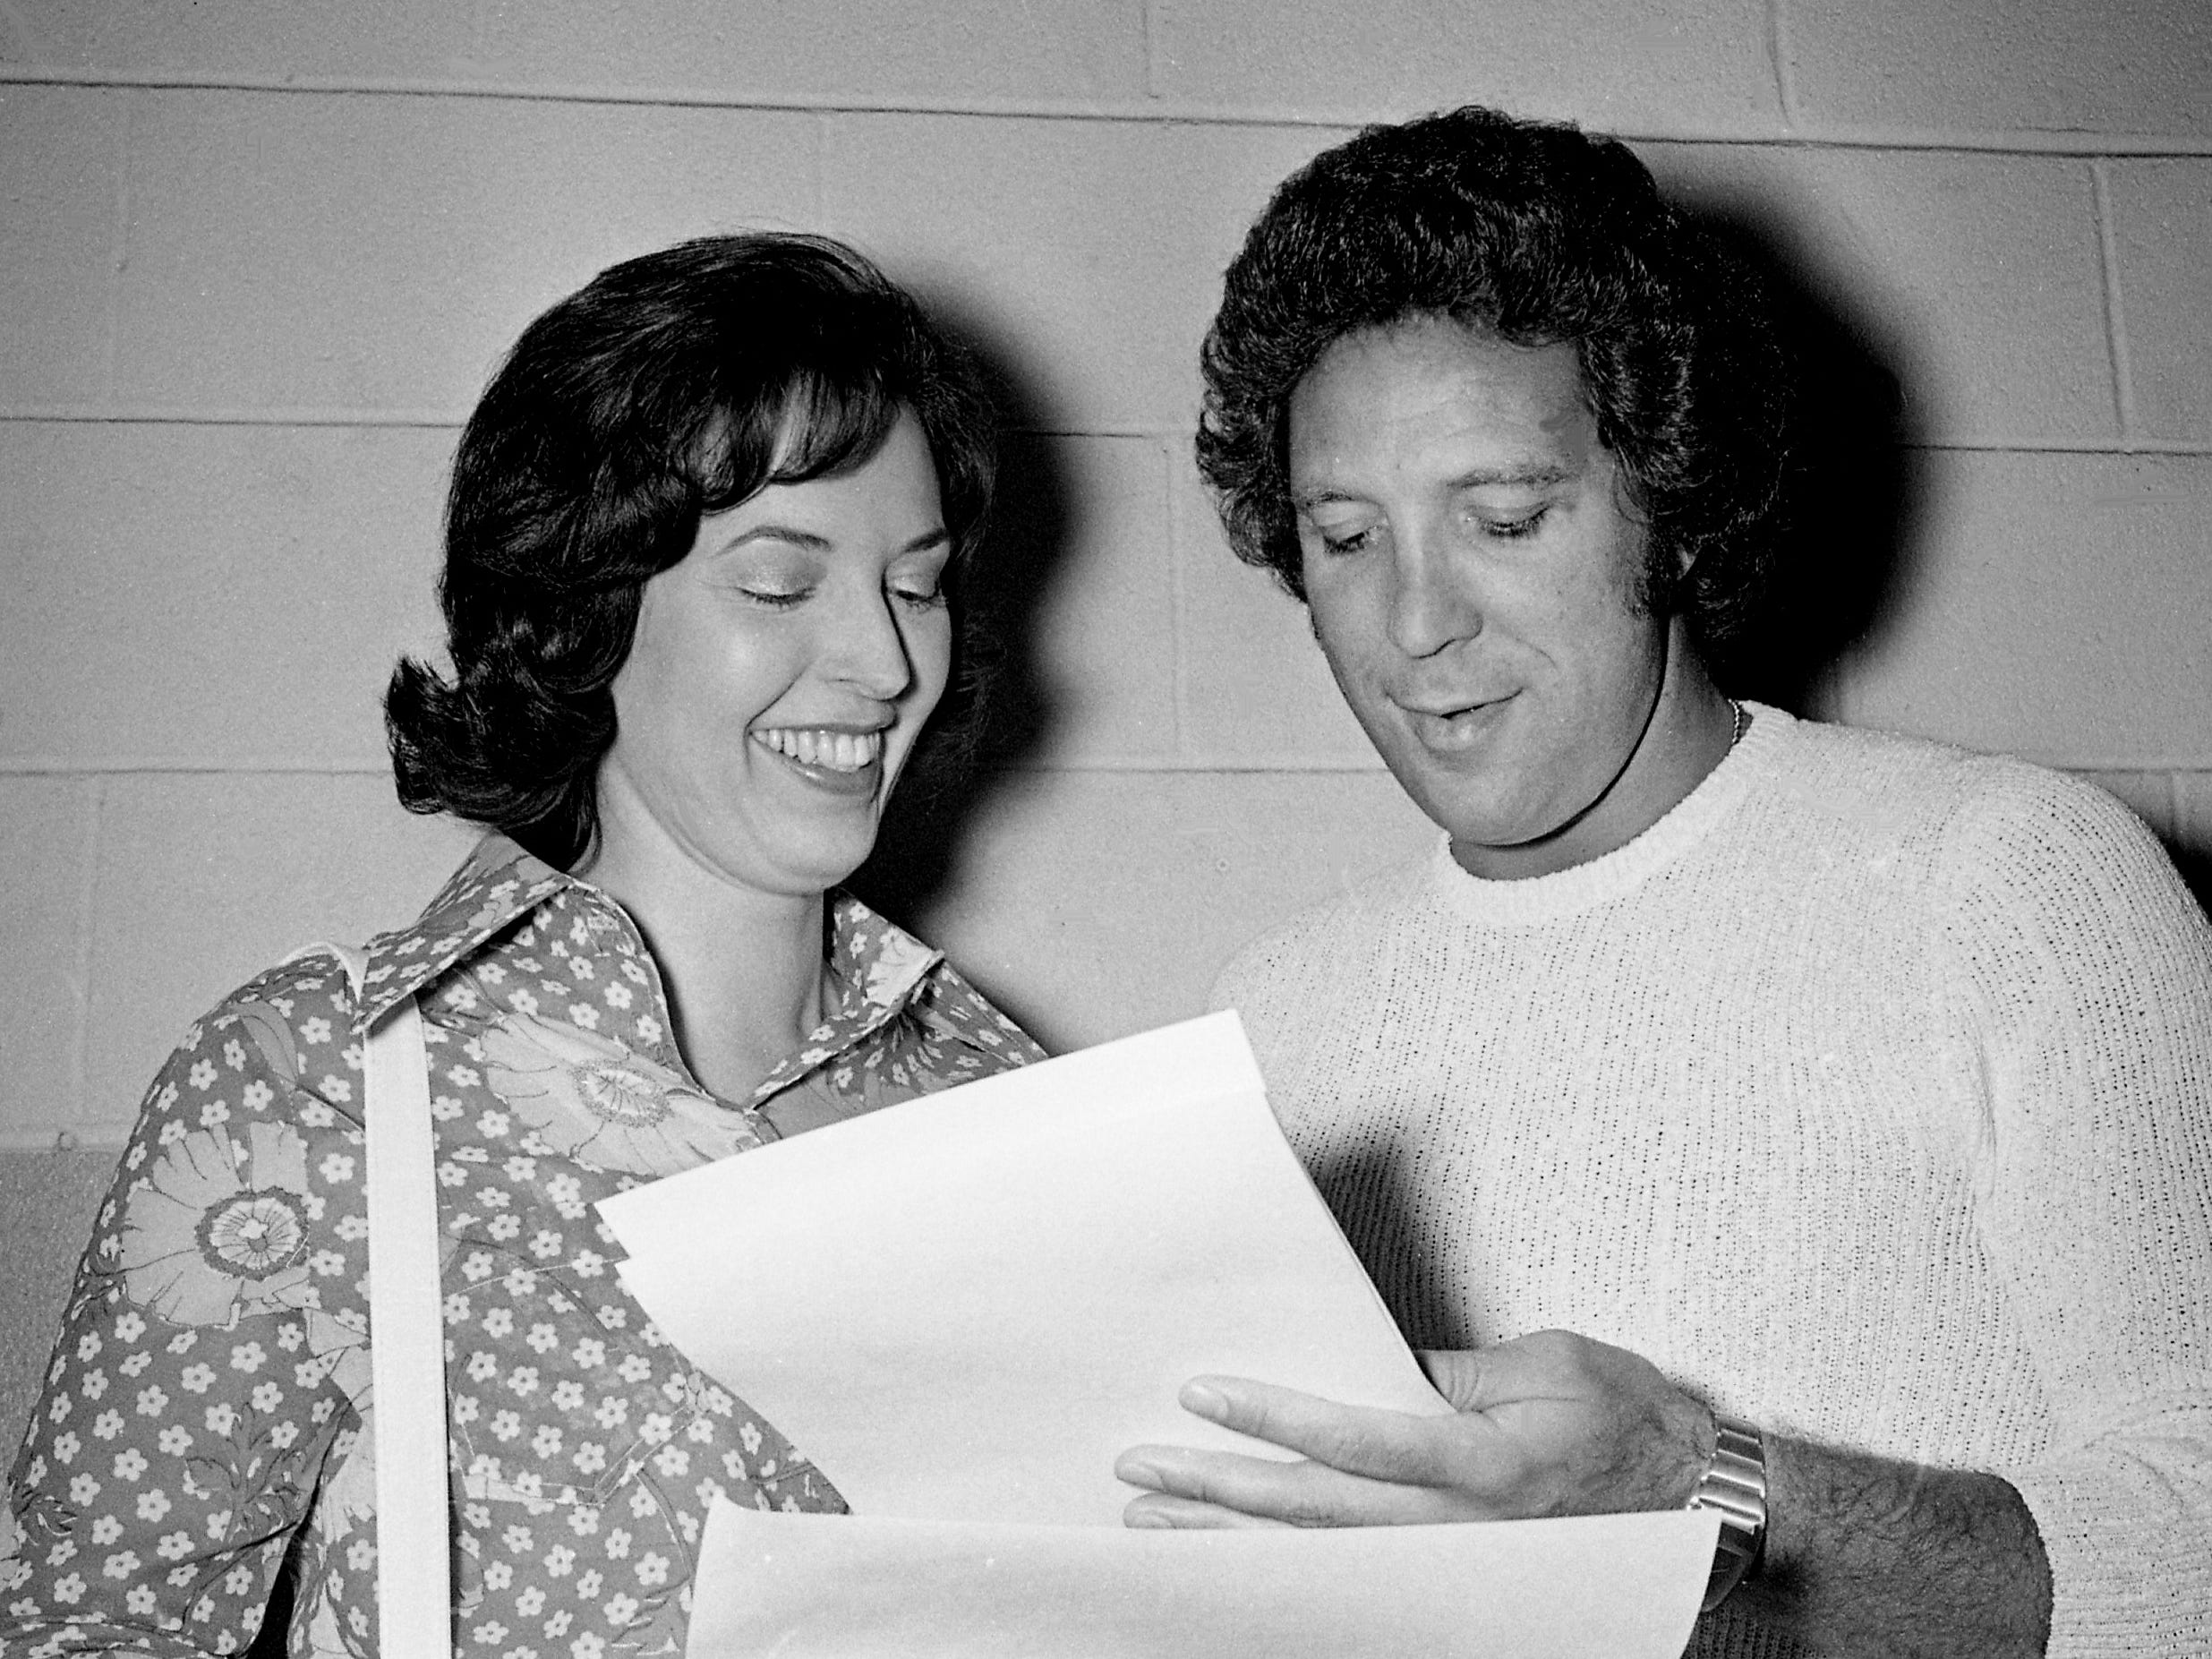 Singer Tom Jones, right, before his concert May 18, 1973, at Municipal Auditorium, signs photographs for Connie Craighead, 23, who lies paralyzed in Madison Hospital. Pat Swingley, left, the Tennessean reporter who wrote about Craighead's fondness for the singing idol, will deliver the photos to Craighead.